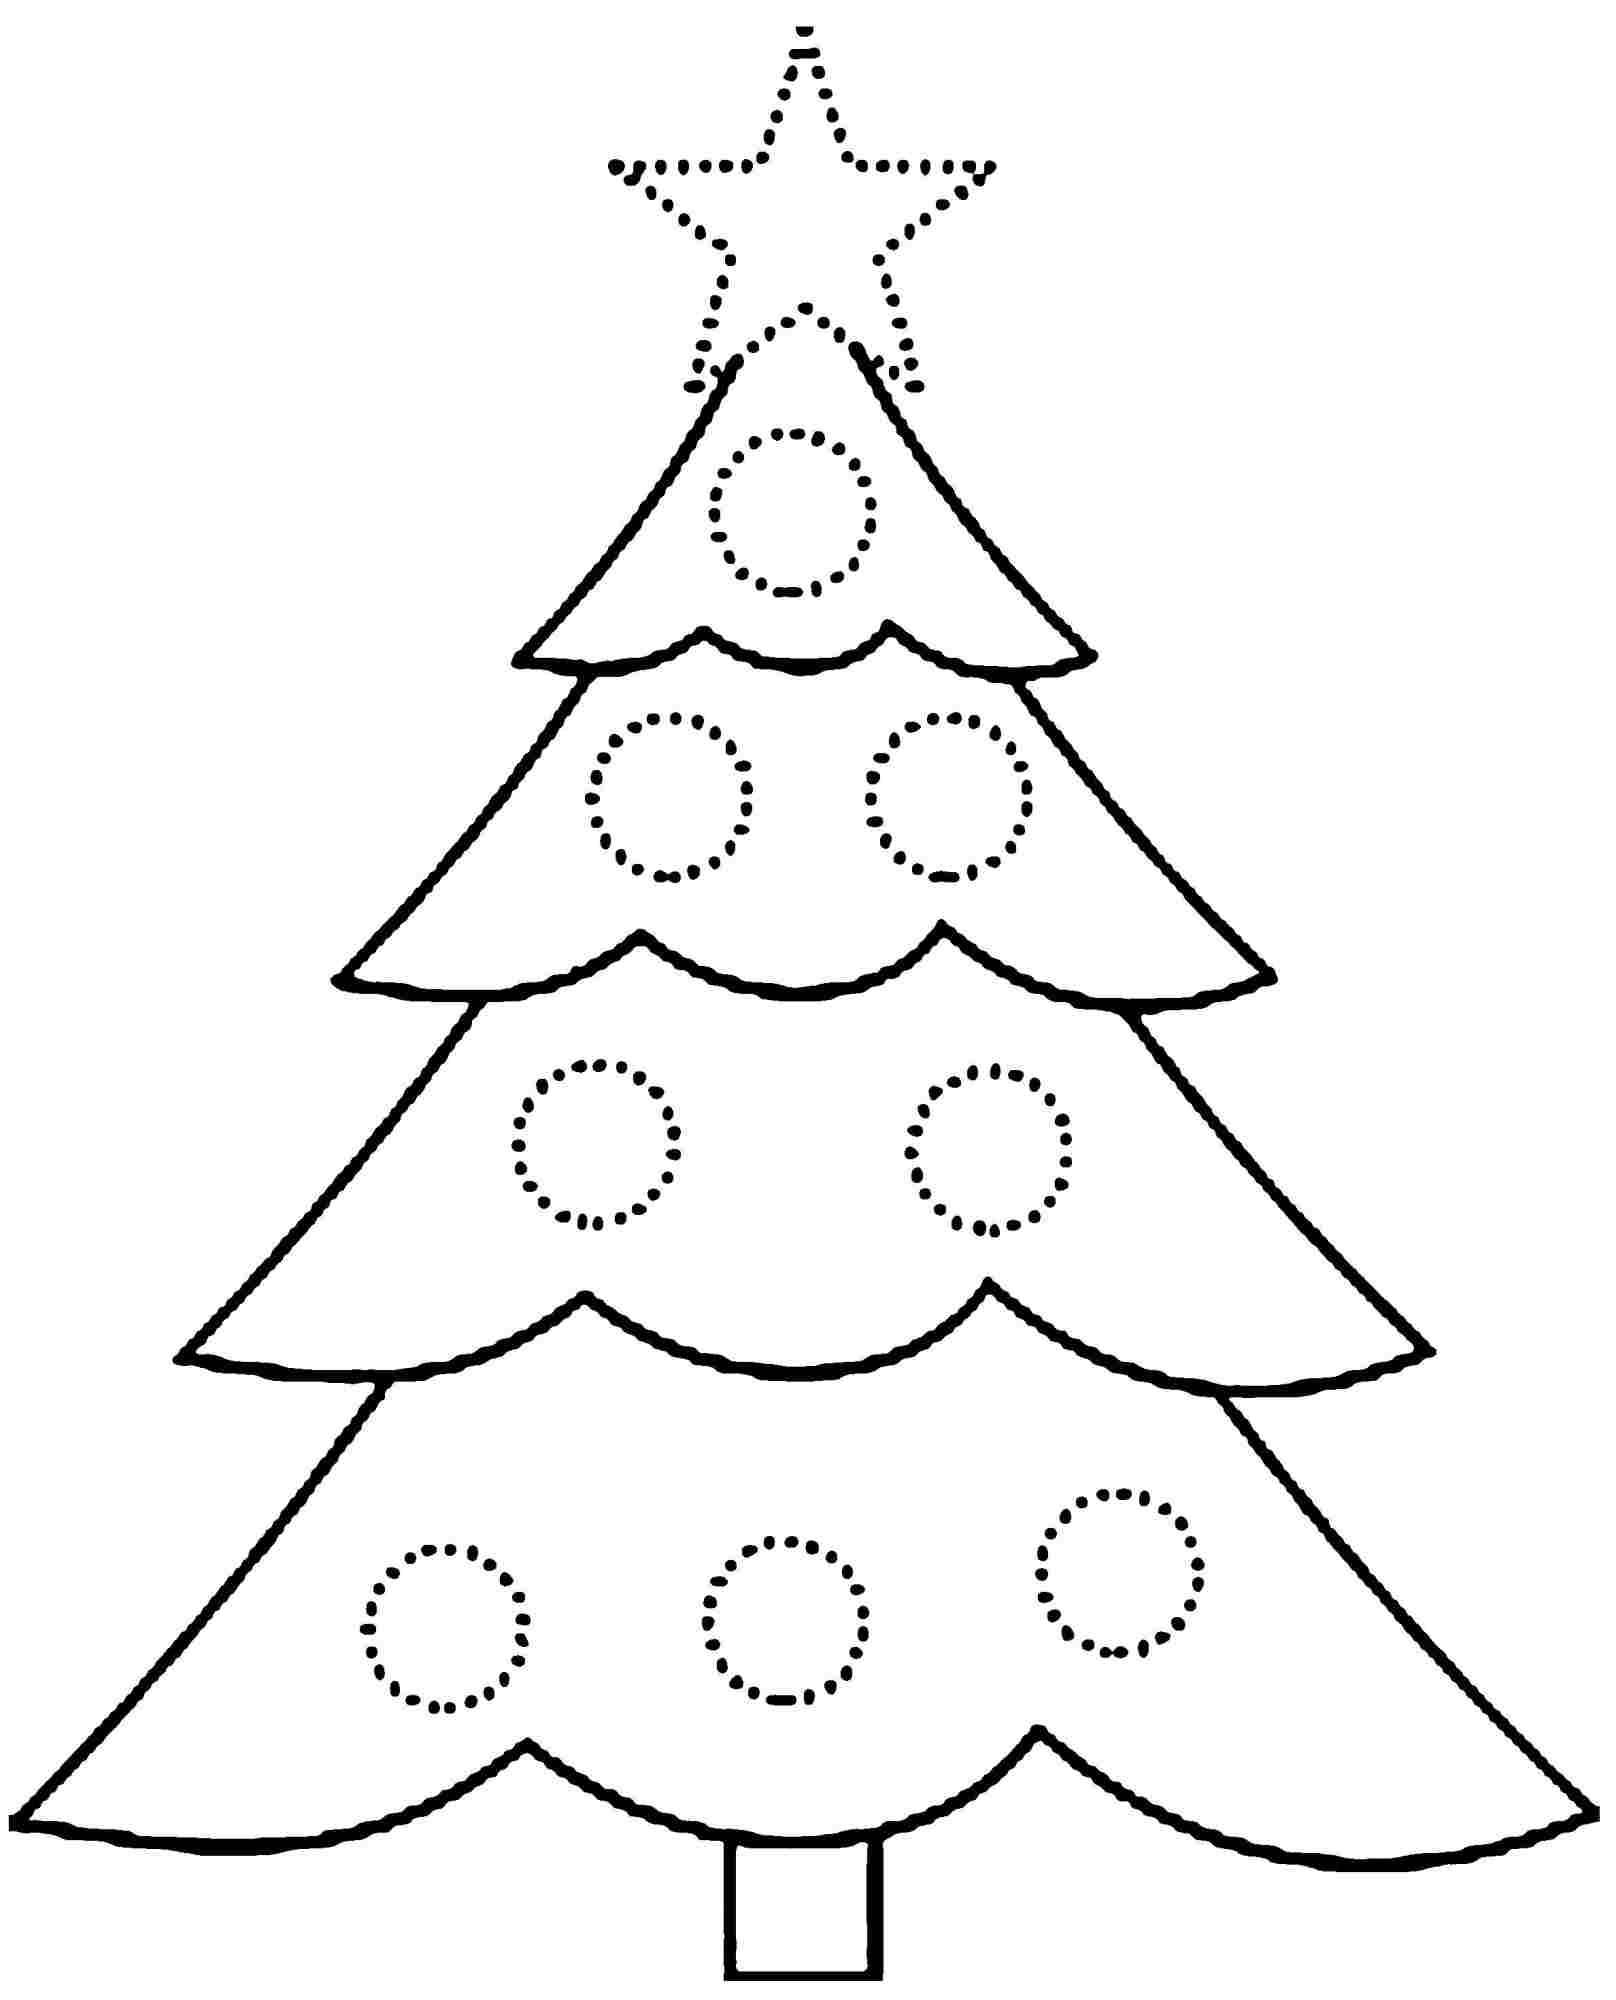 Coloring Christmas Tree Idealstalist Gallery Of Noted Coloring Picture A Tree Pages Unknown Resolutions Printable